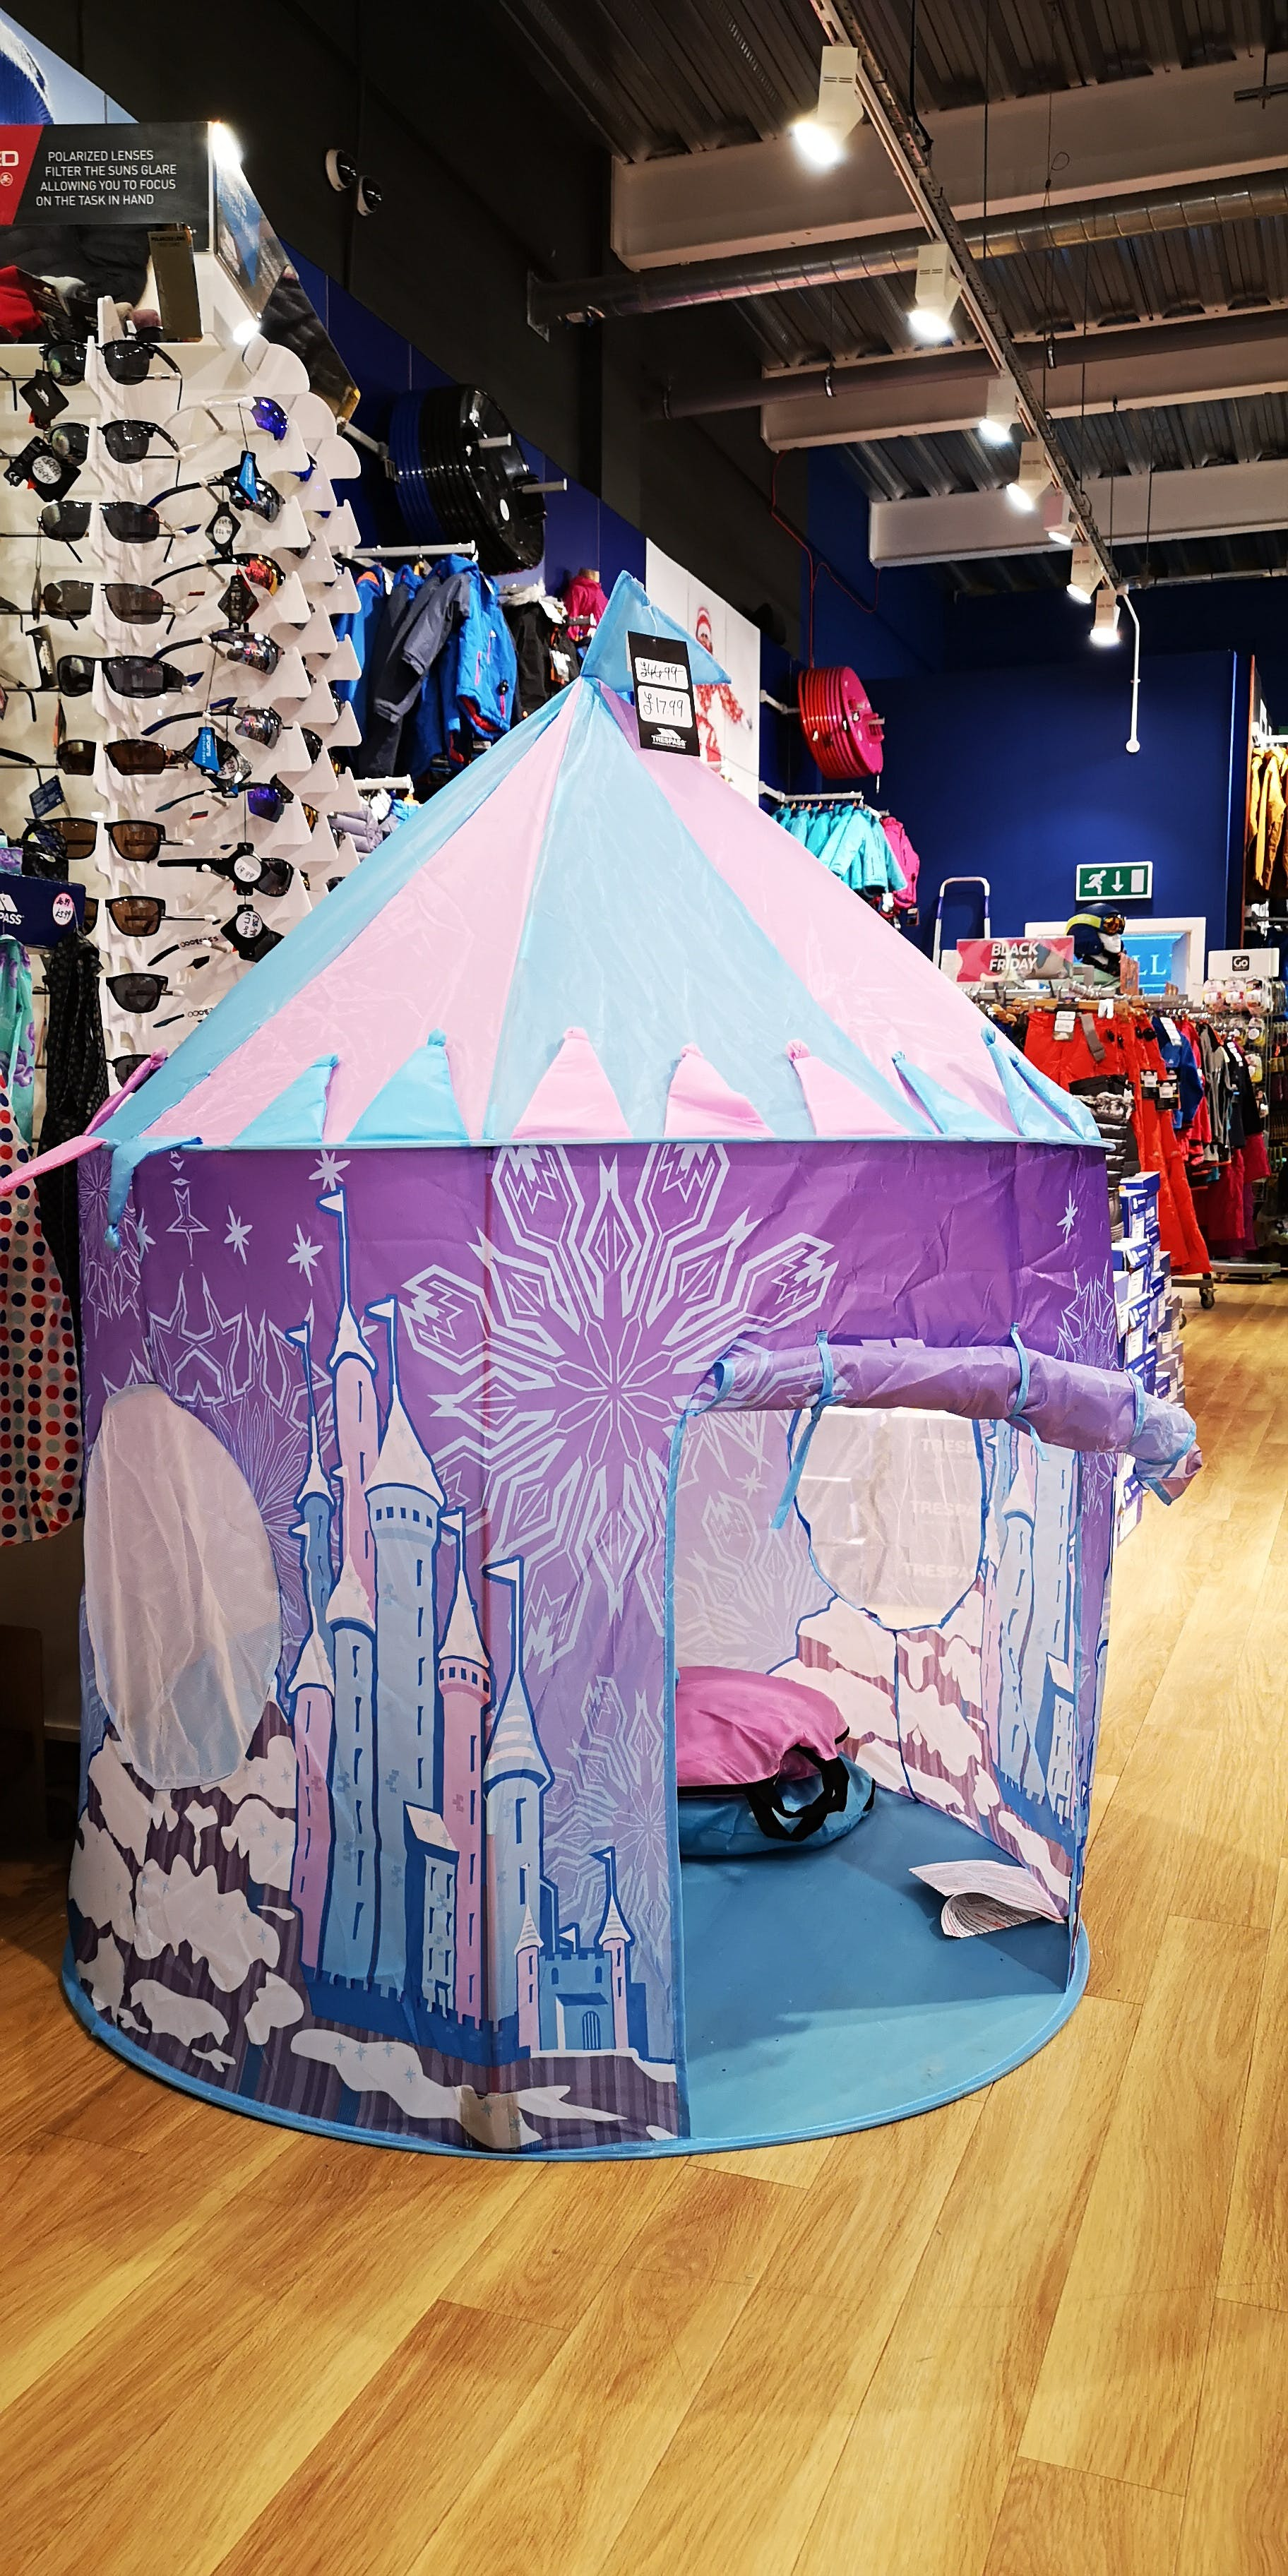 Princess ice palace pop-up tent - just let it go! TRESPASS £17.99